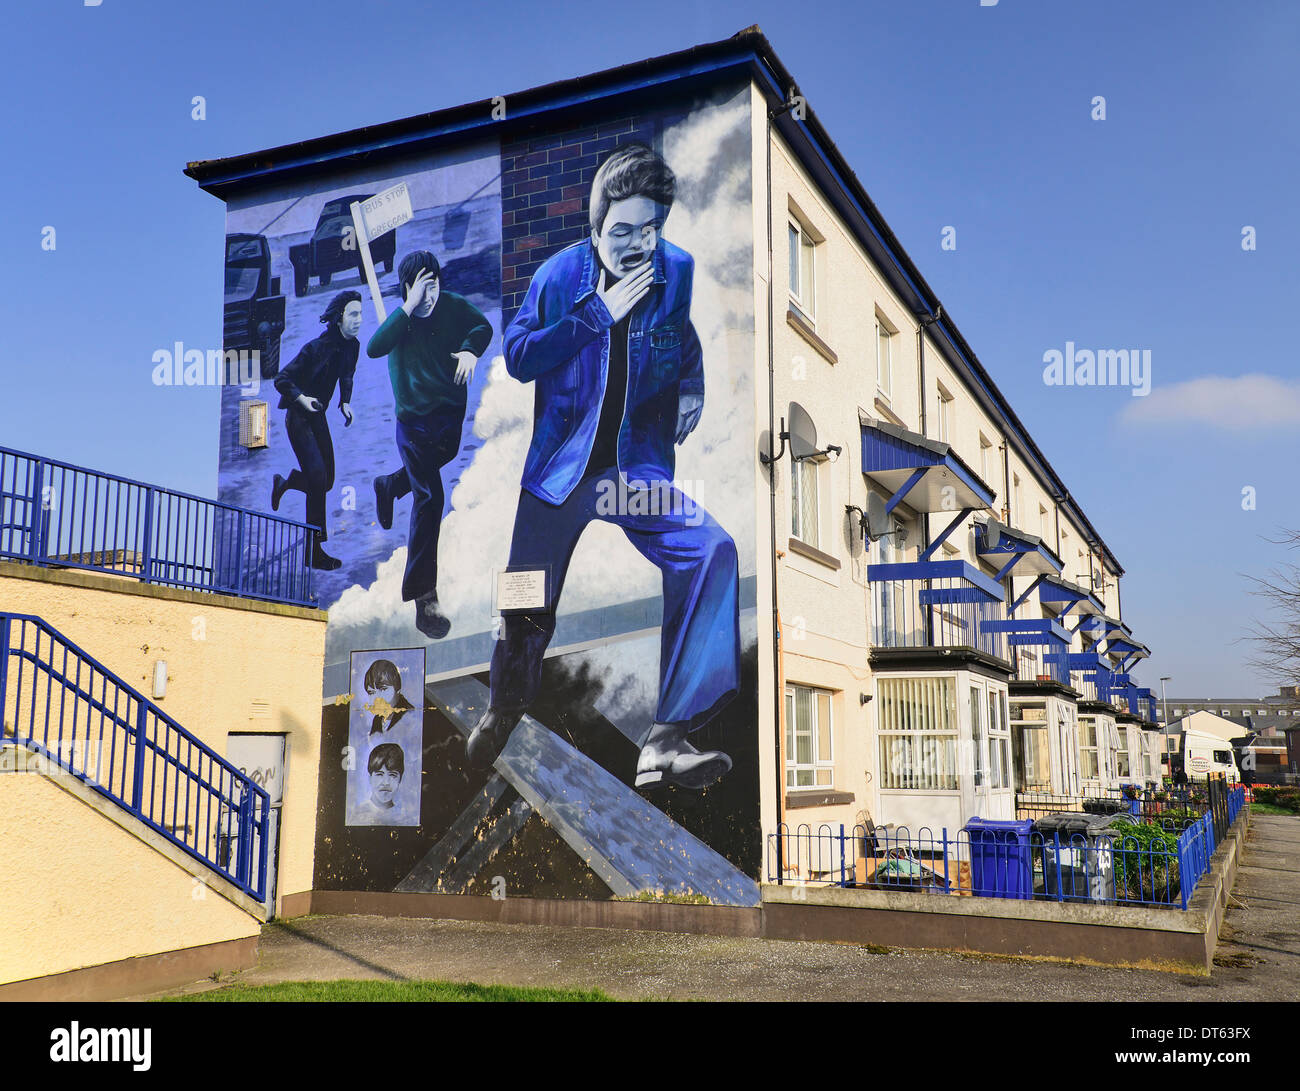 Ireland, Derry, The People's Gallery series of murals in the Bogside, Mural known as The Runner. - Stock Image